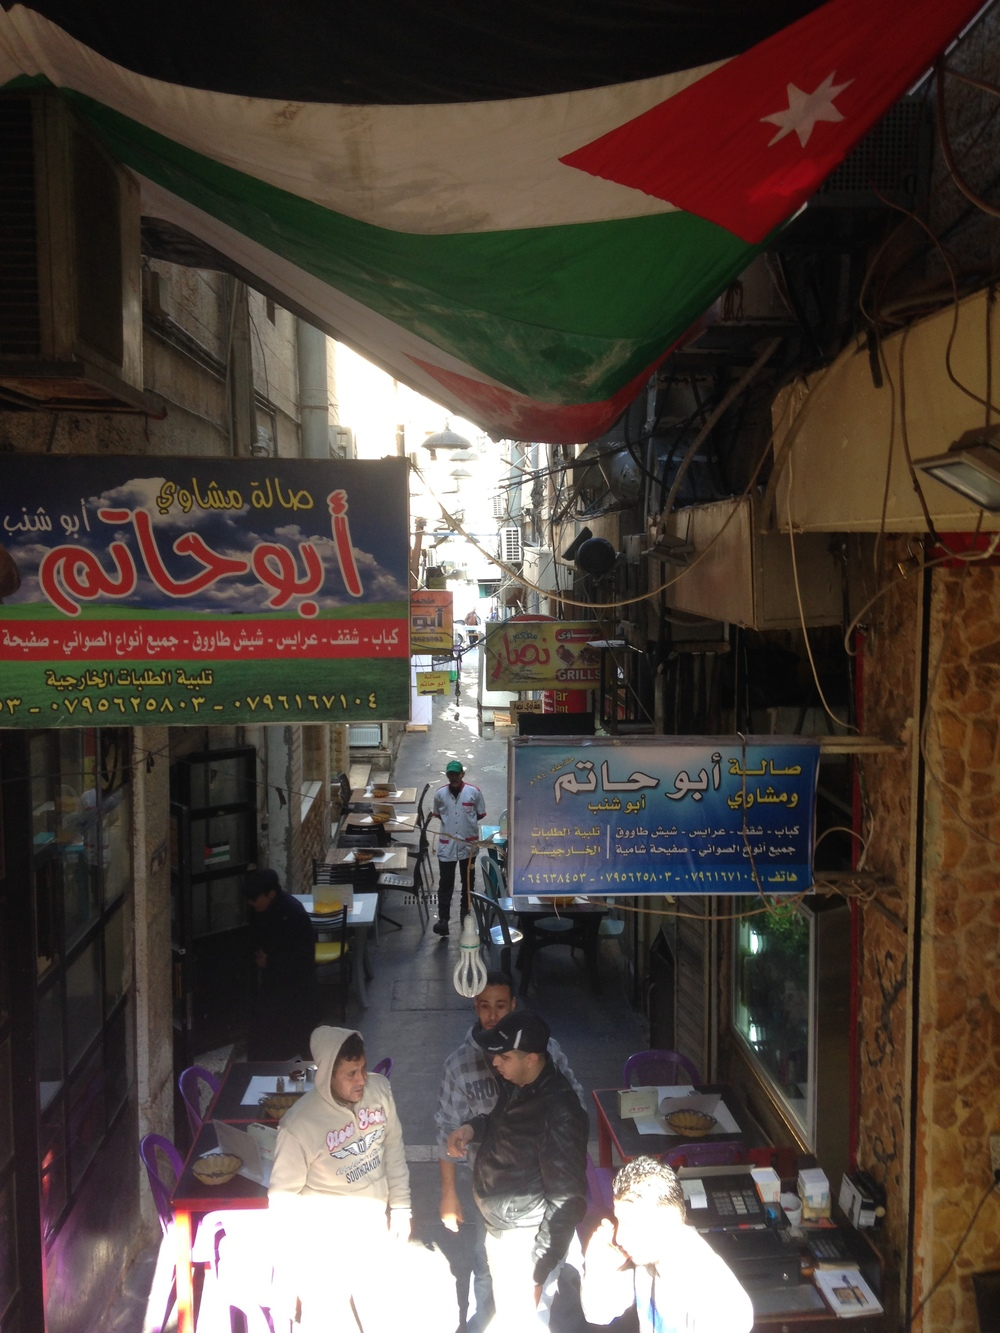 Best lunch options are down this alley in Amman